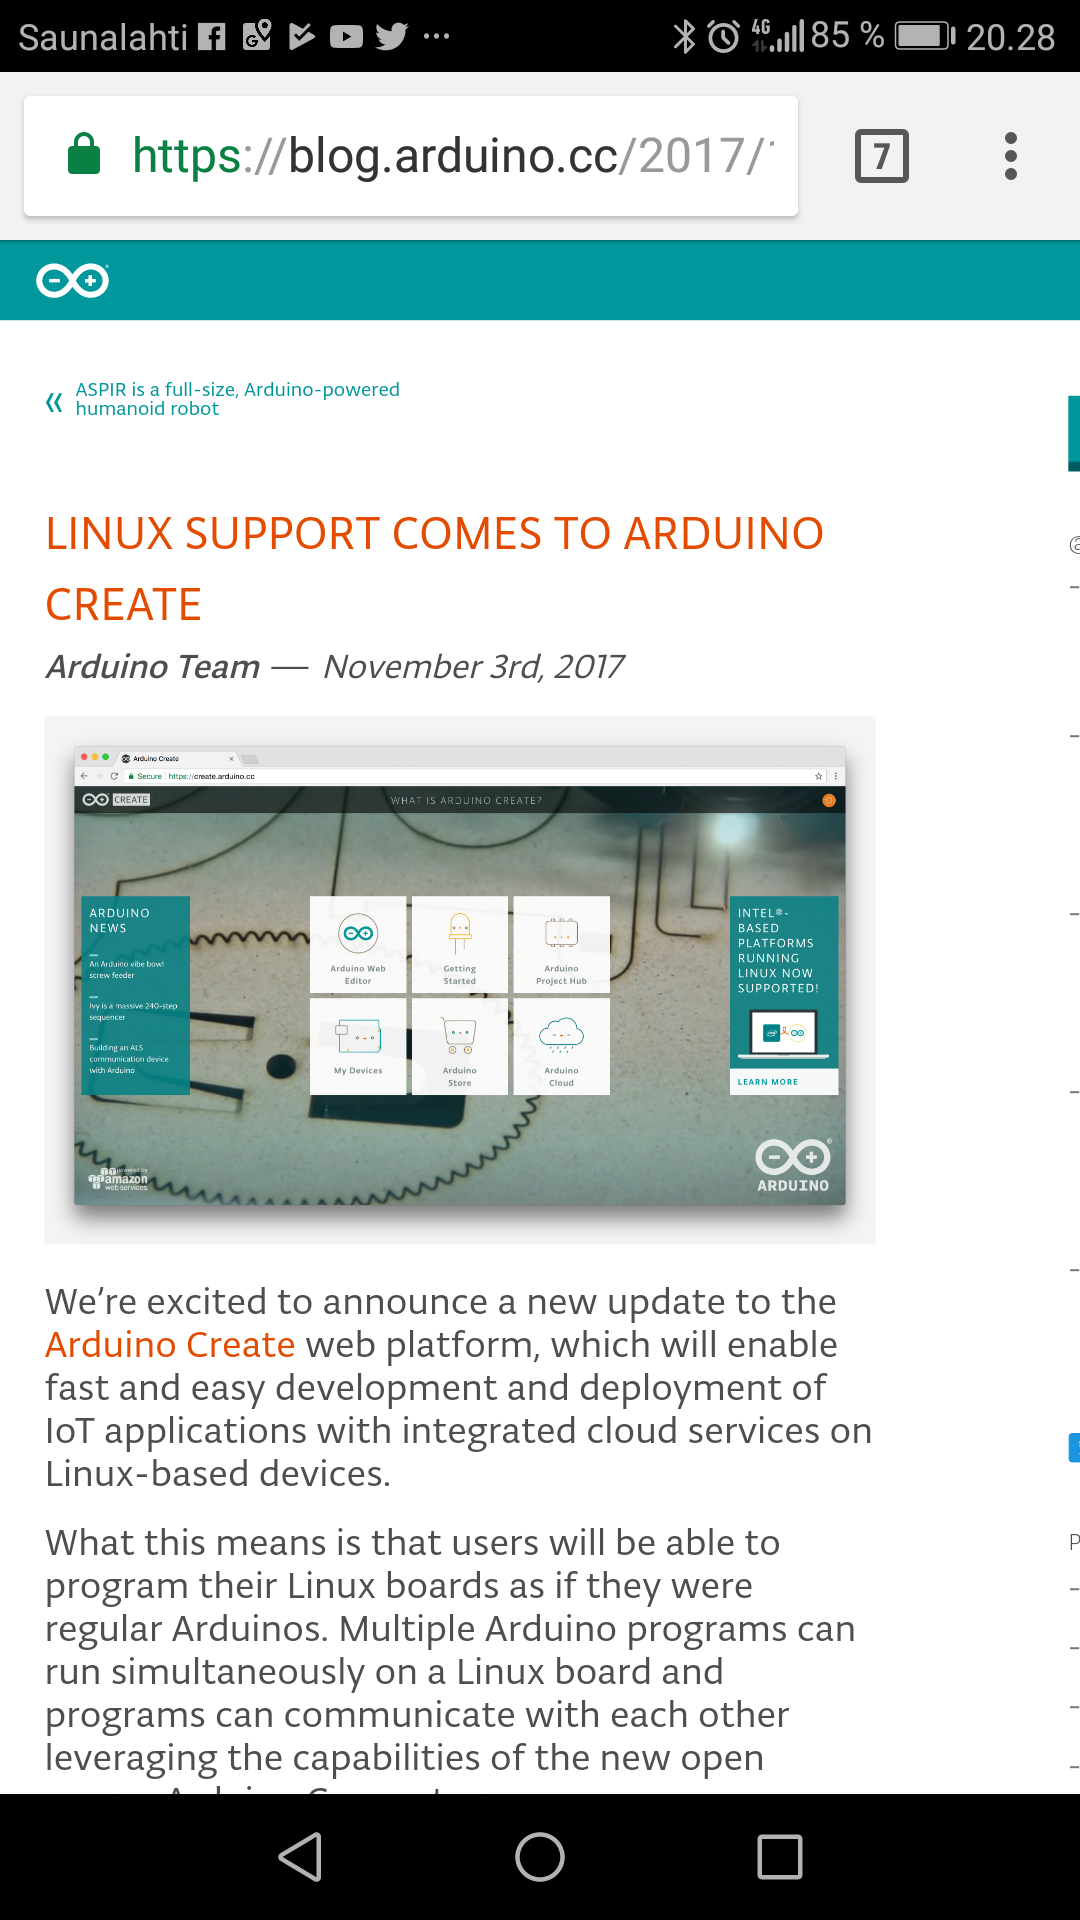 Arduino linux support comes to create